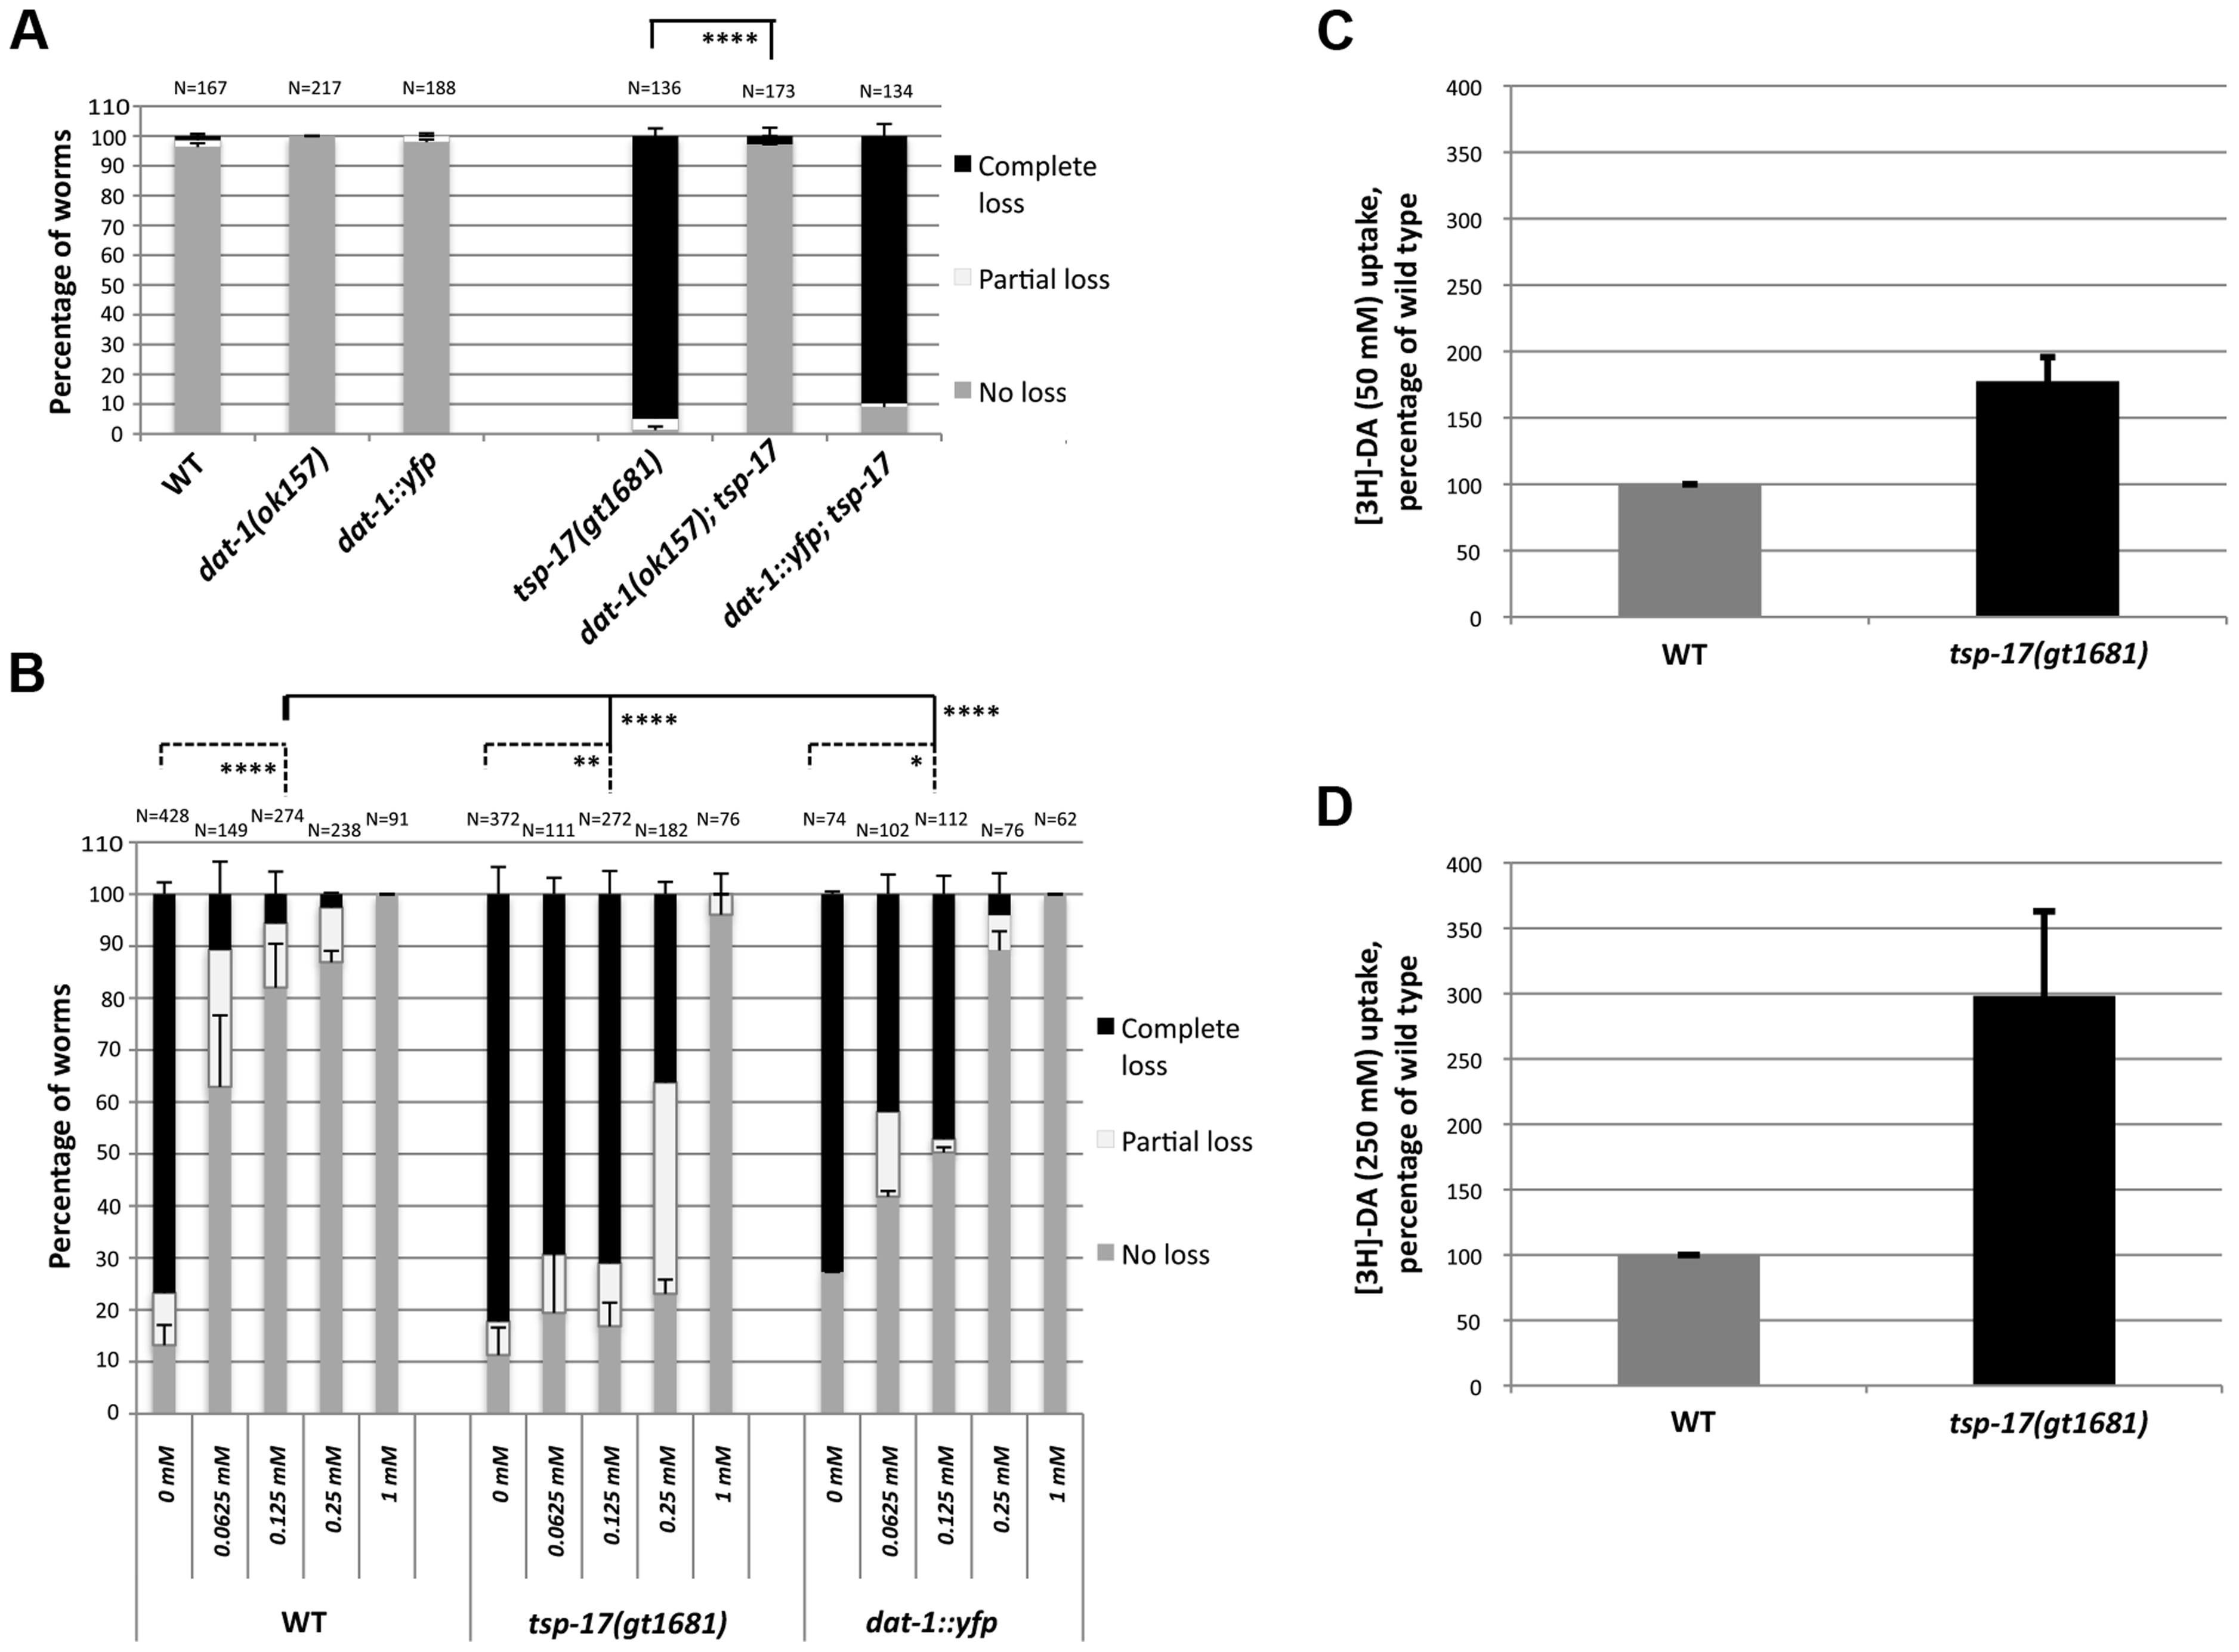 Evidence for DAT-1 hyperactivation in <i>tsp-17</i> worms.